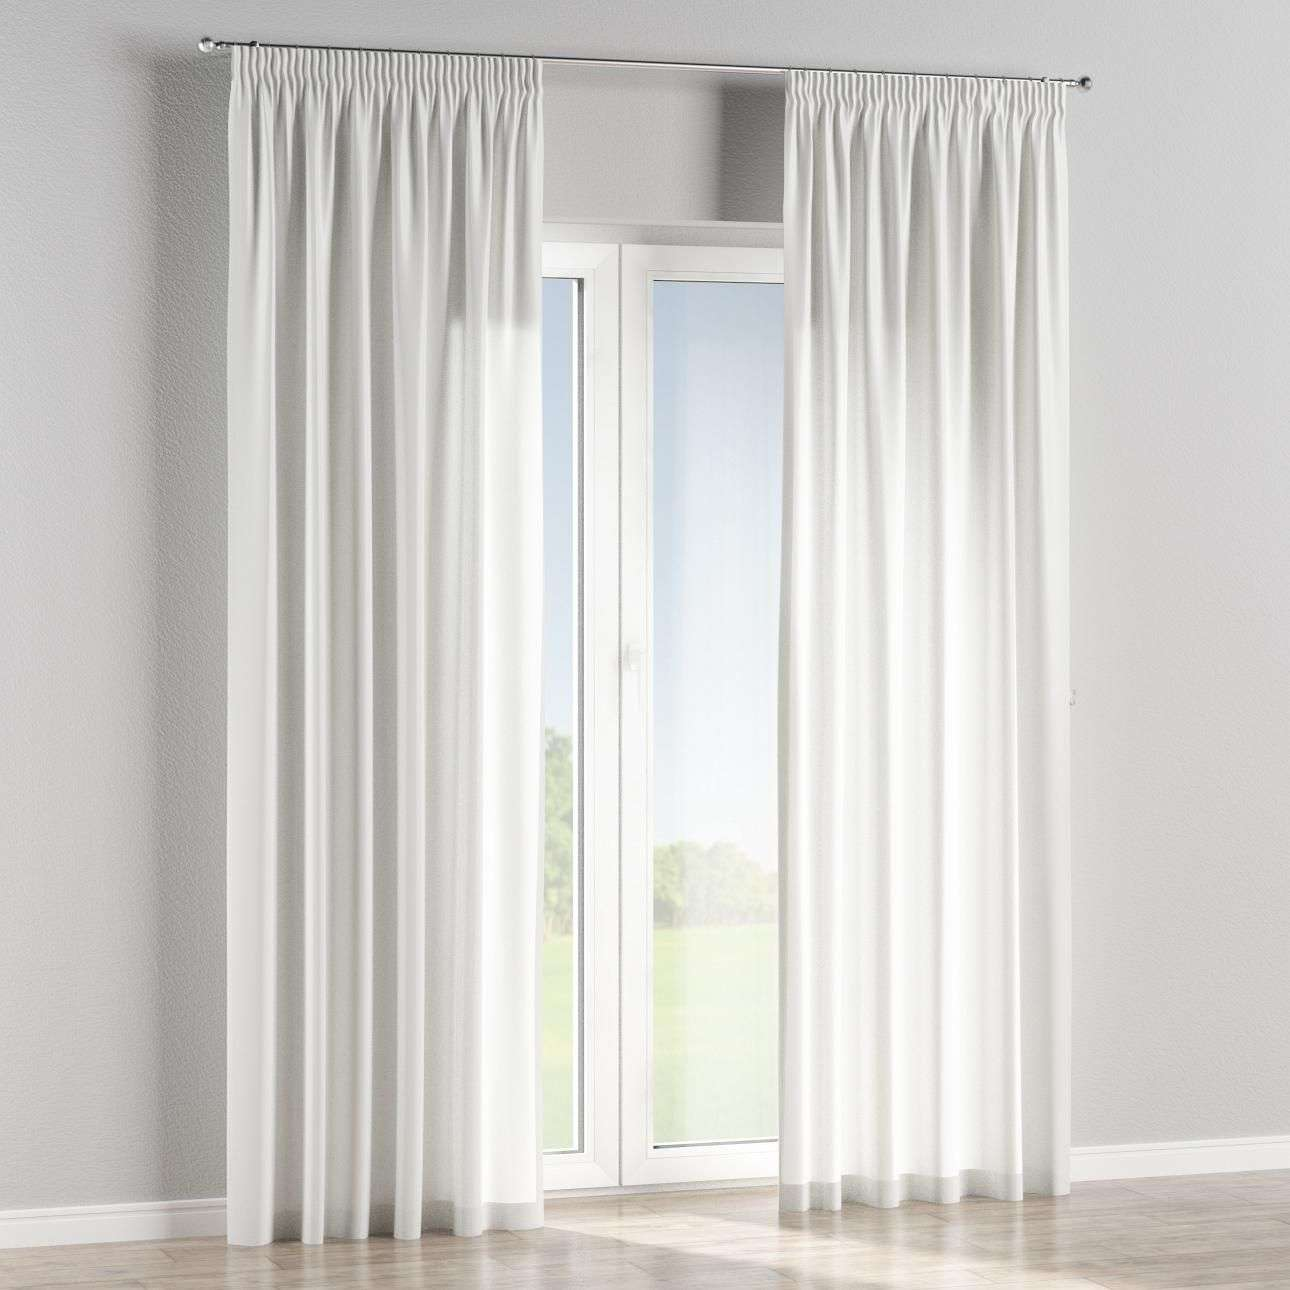 Pencil pleat curtains in collection Marina, fabric: 140-60